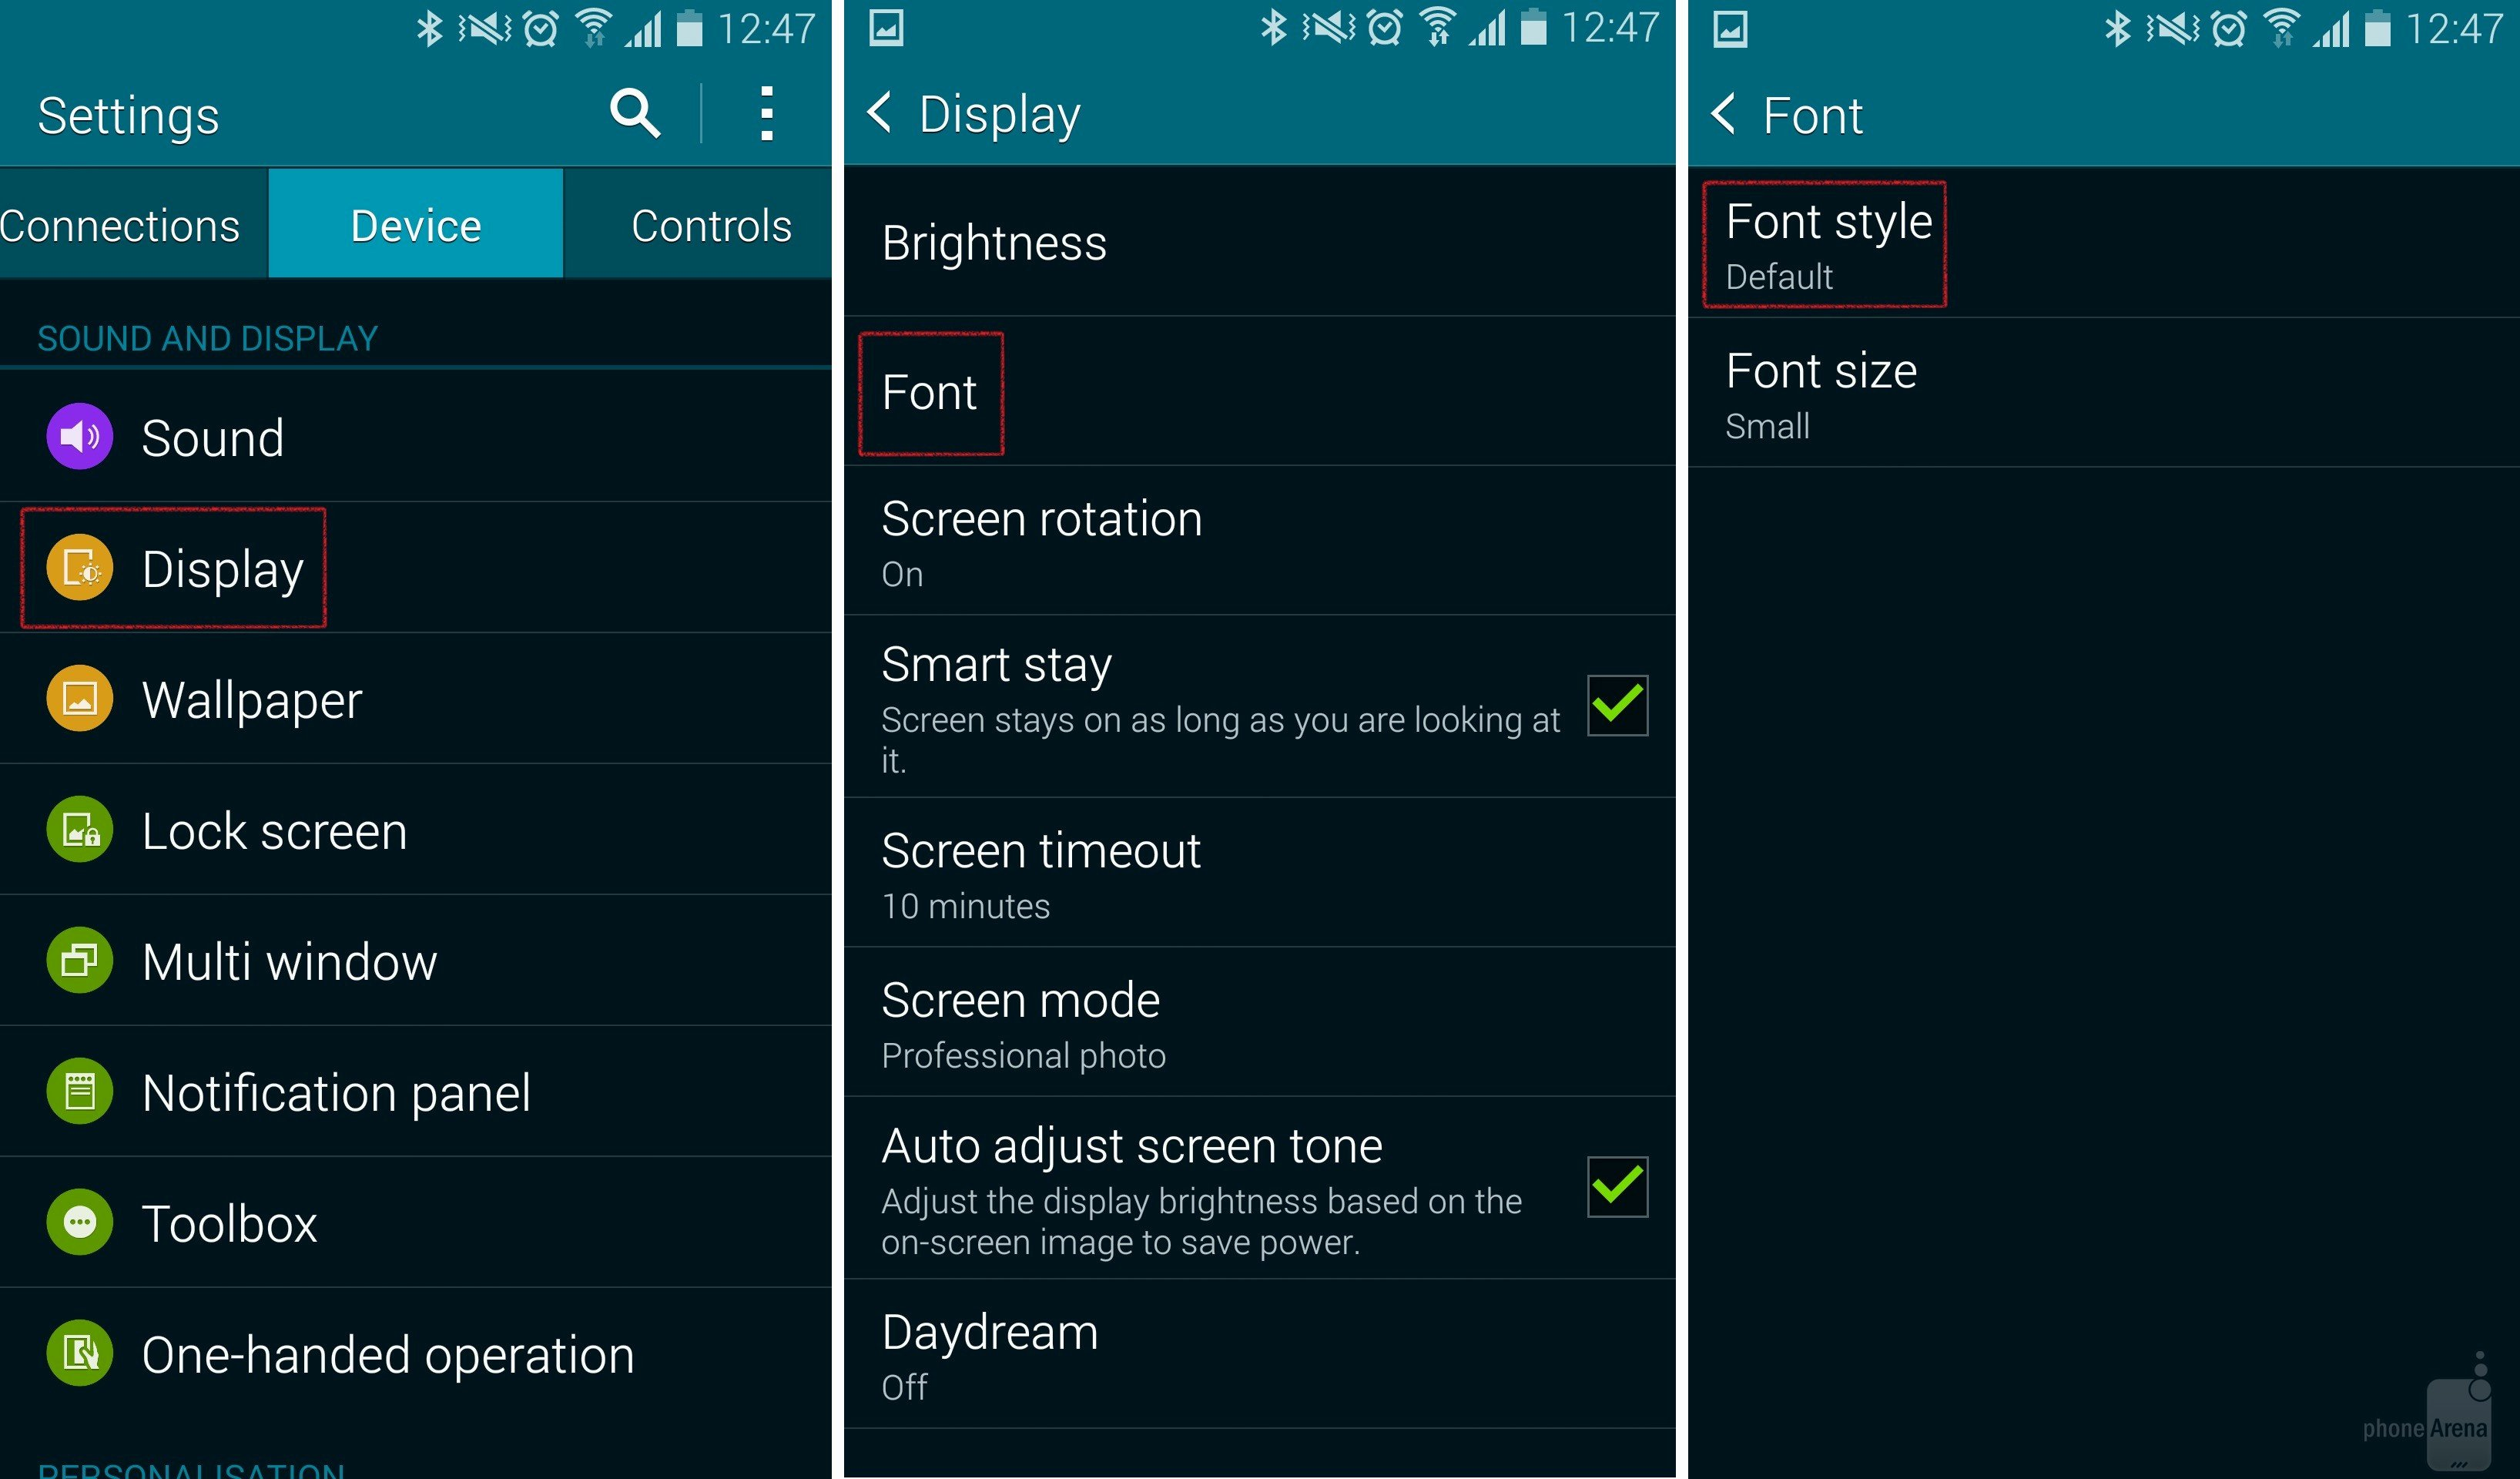 Fonts Style for android Inspirational How to Change Fonts On android with or without Root